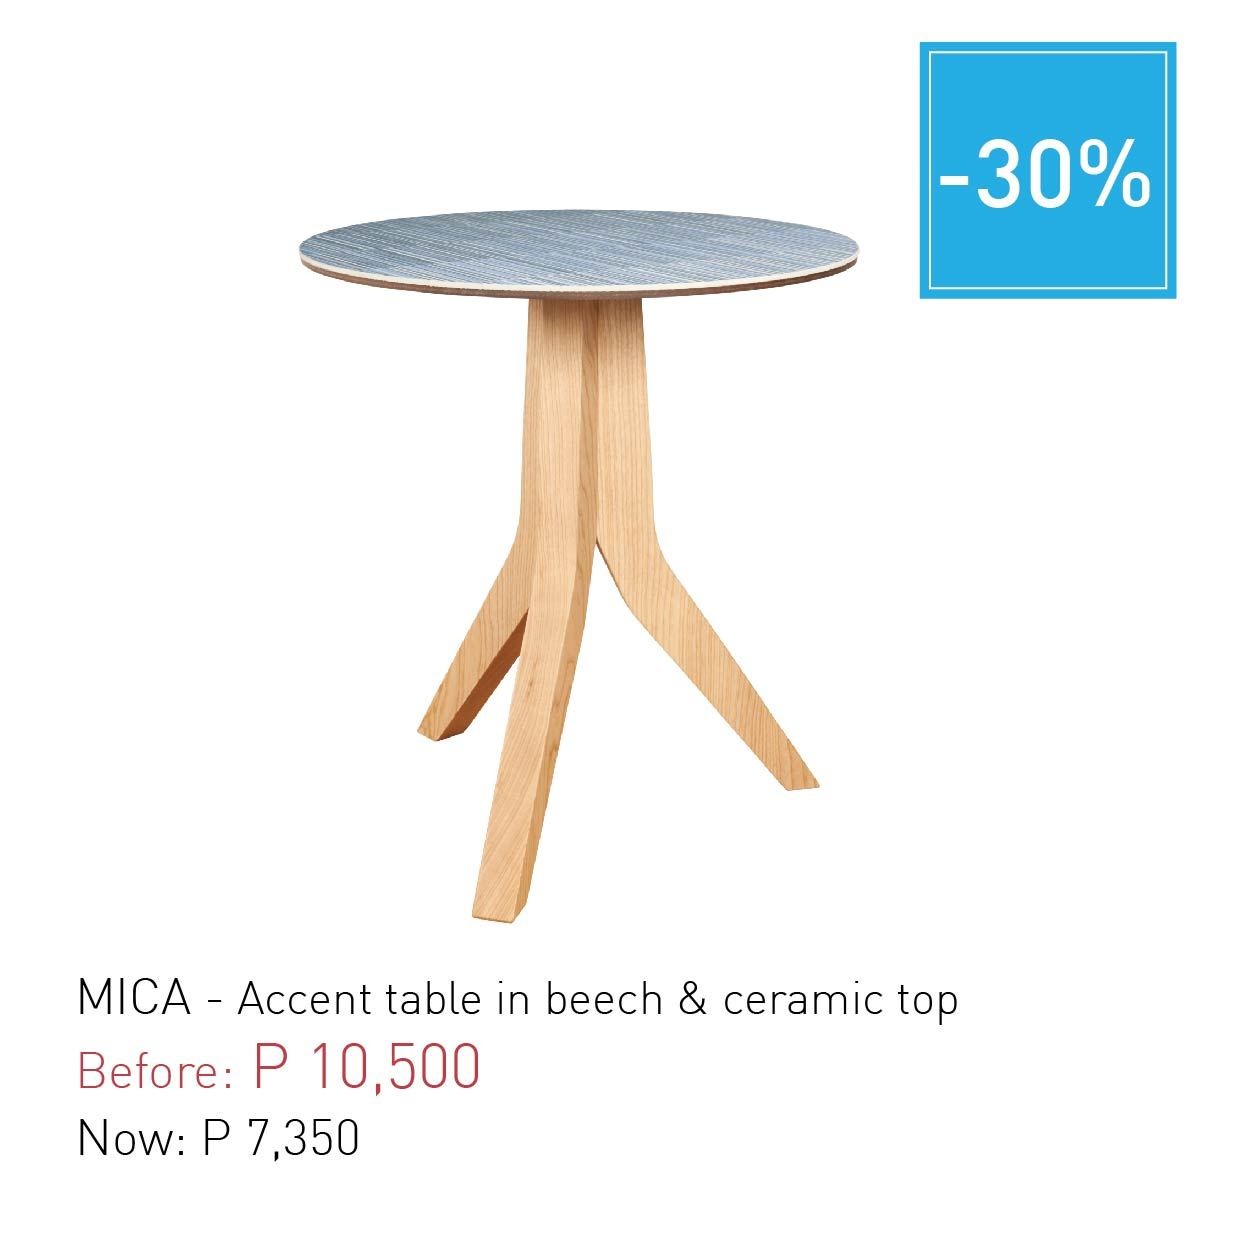 mica accent table beech ceramic top habitat manila outdoor tall silver lamps wood coffee with drawers upcycled dining bunnings chairs and tables painted ideas pipe desk seattle